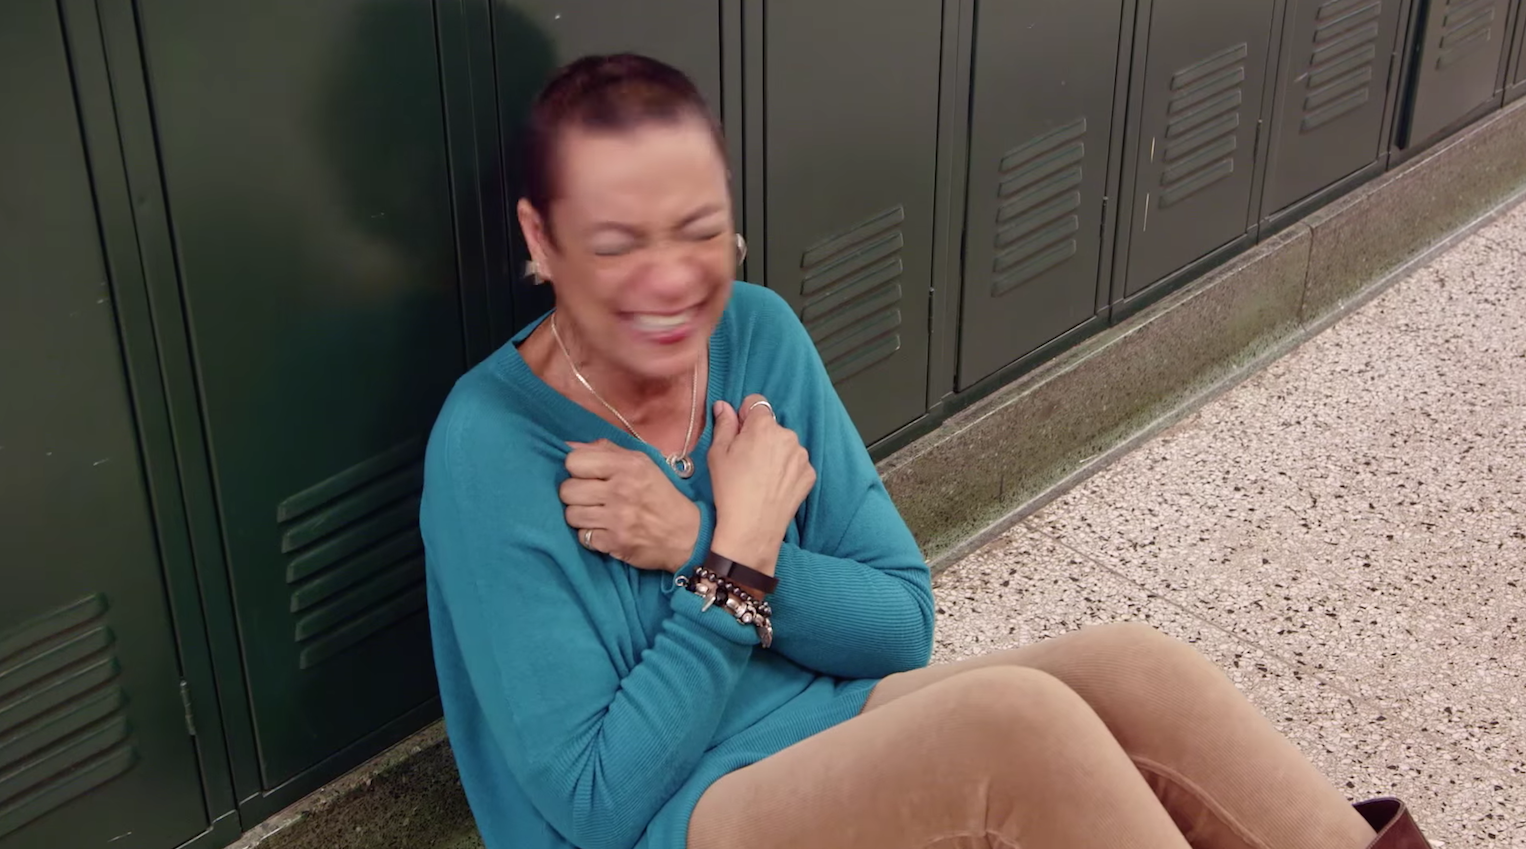 A teacher heads down a hallway and what she saw will give you goose bumps